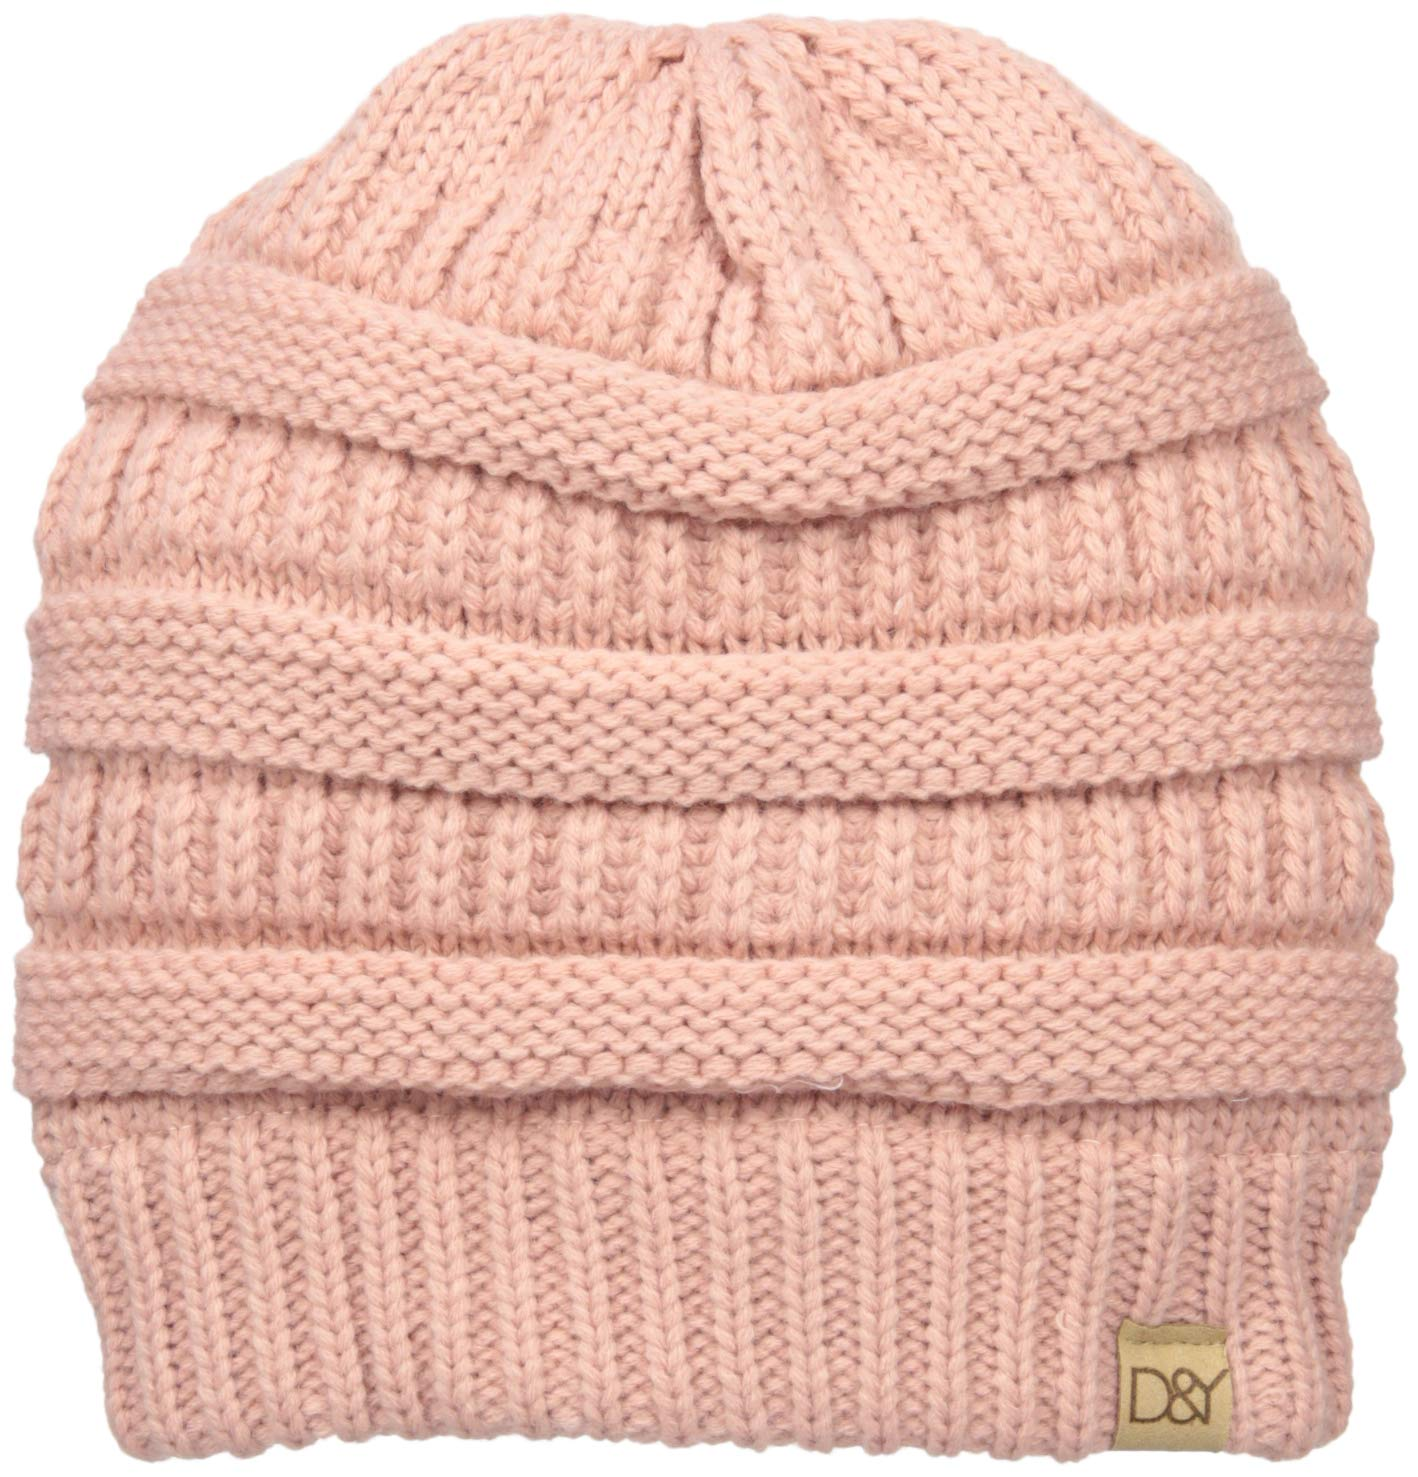 D&Y Women's David and Young's Solid Slinky Beanie, Blush, One Size